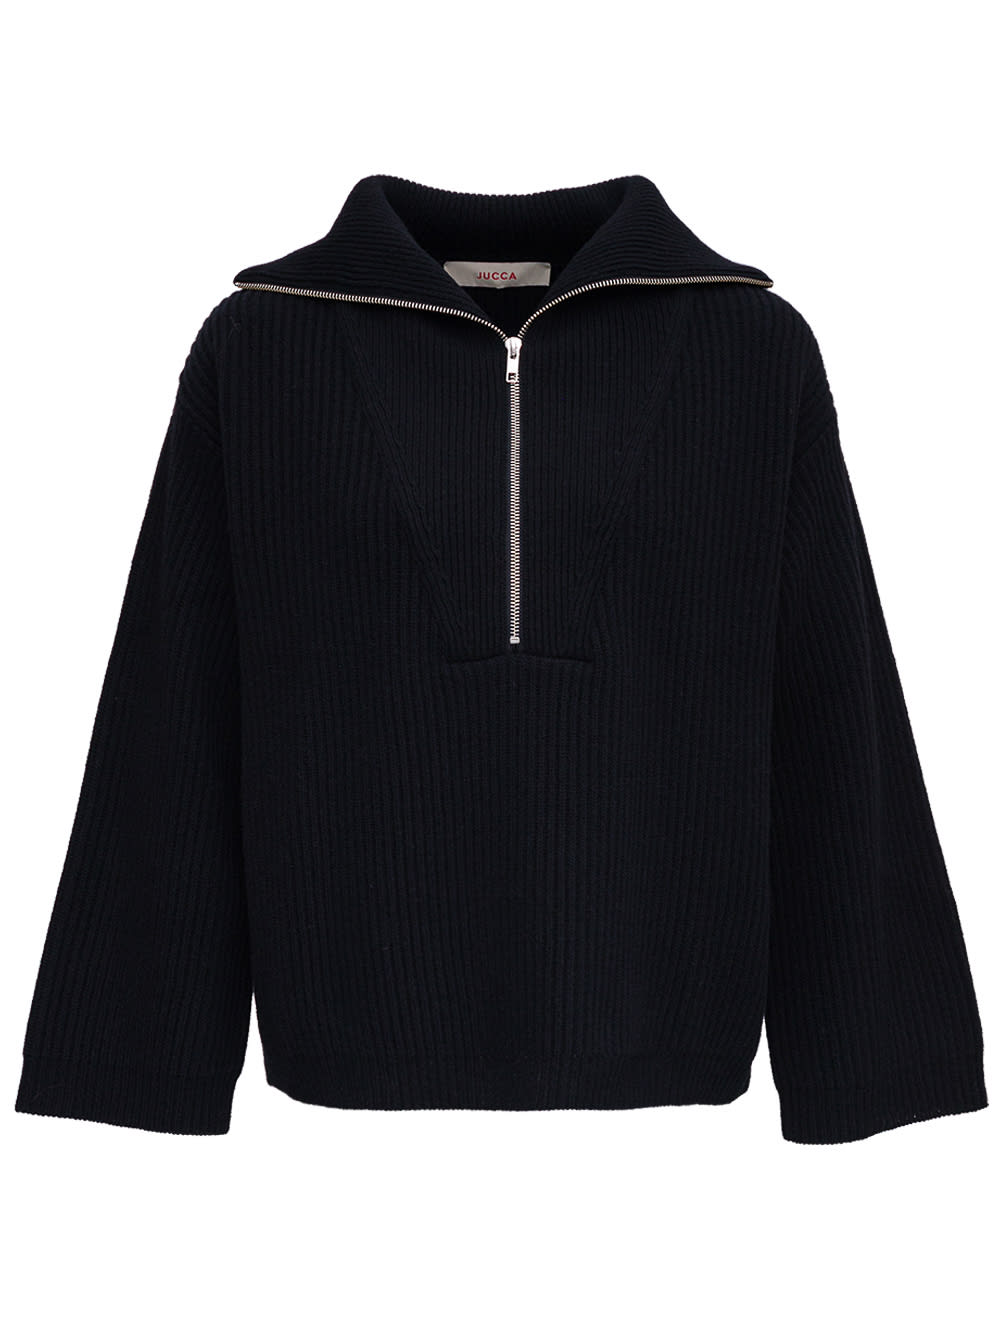 Black Wool Sweater With Wide Neckline And Zip